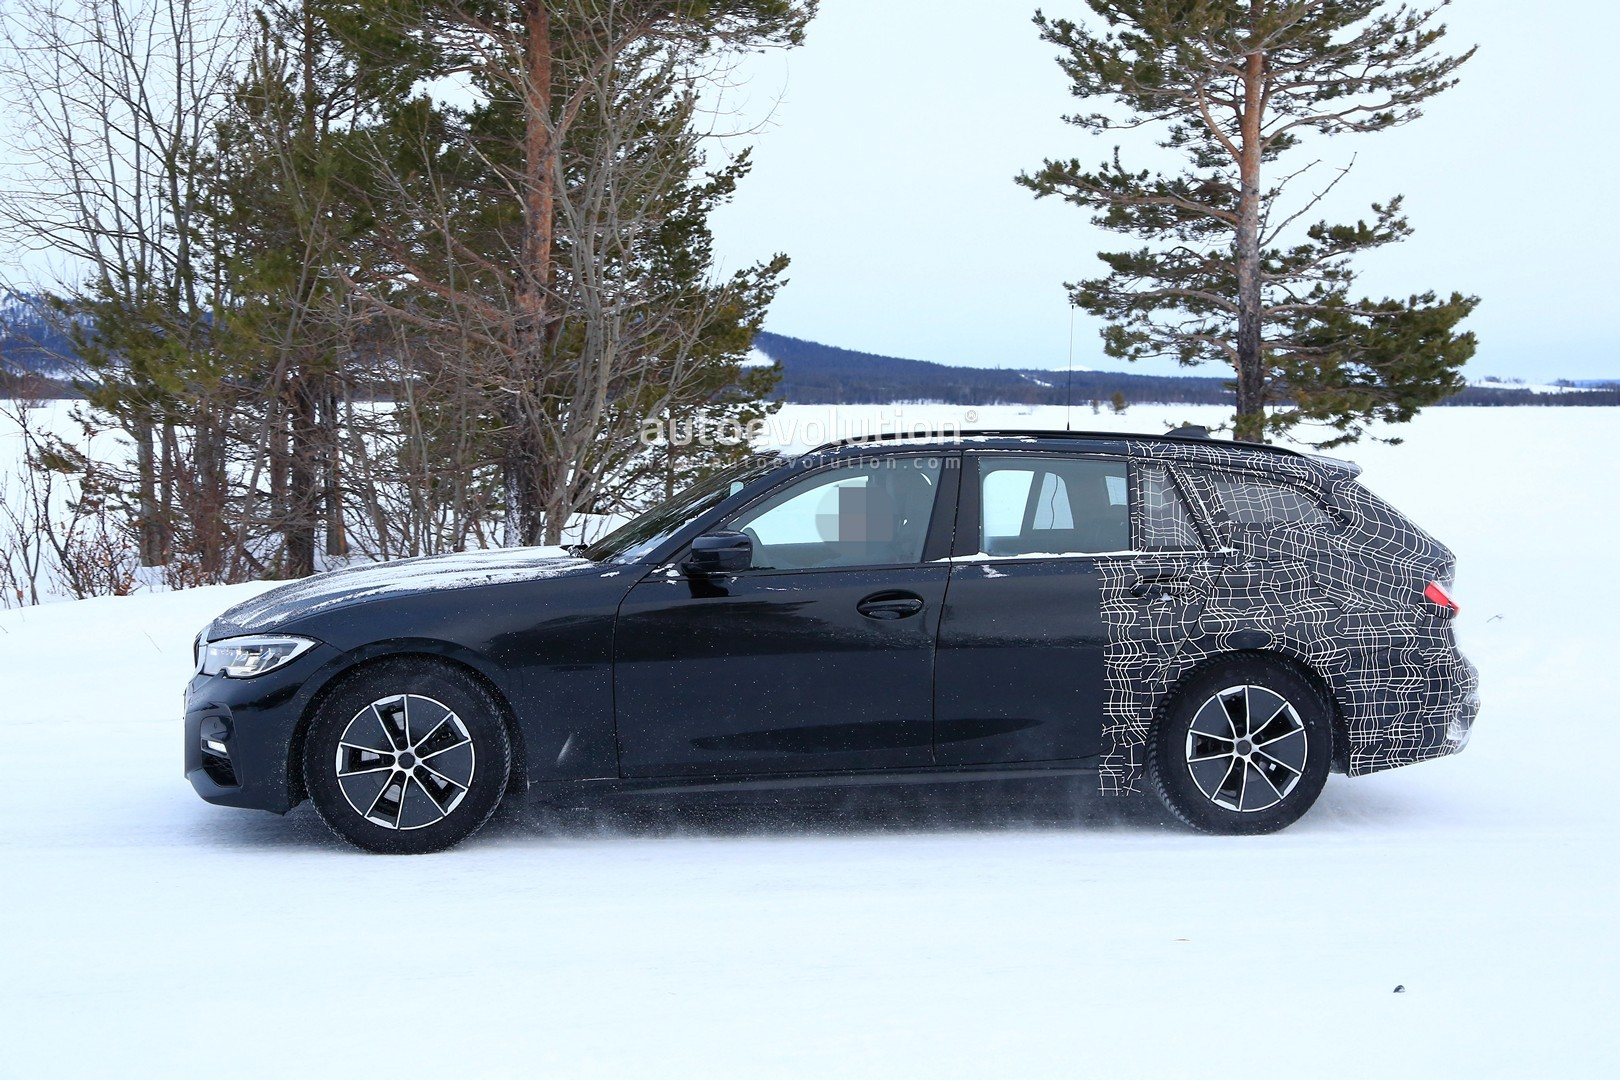 2020 Bmw 3 Series Touring Spied Winter Testing With M